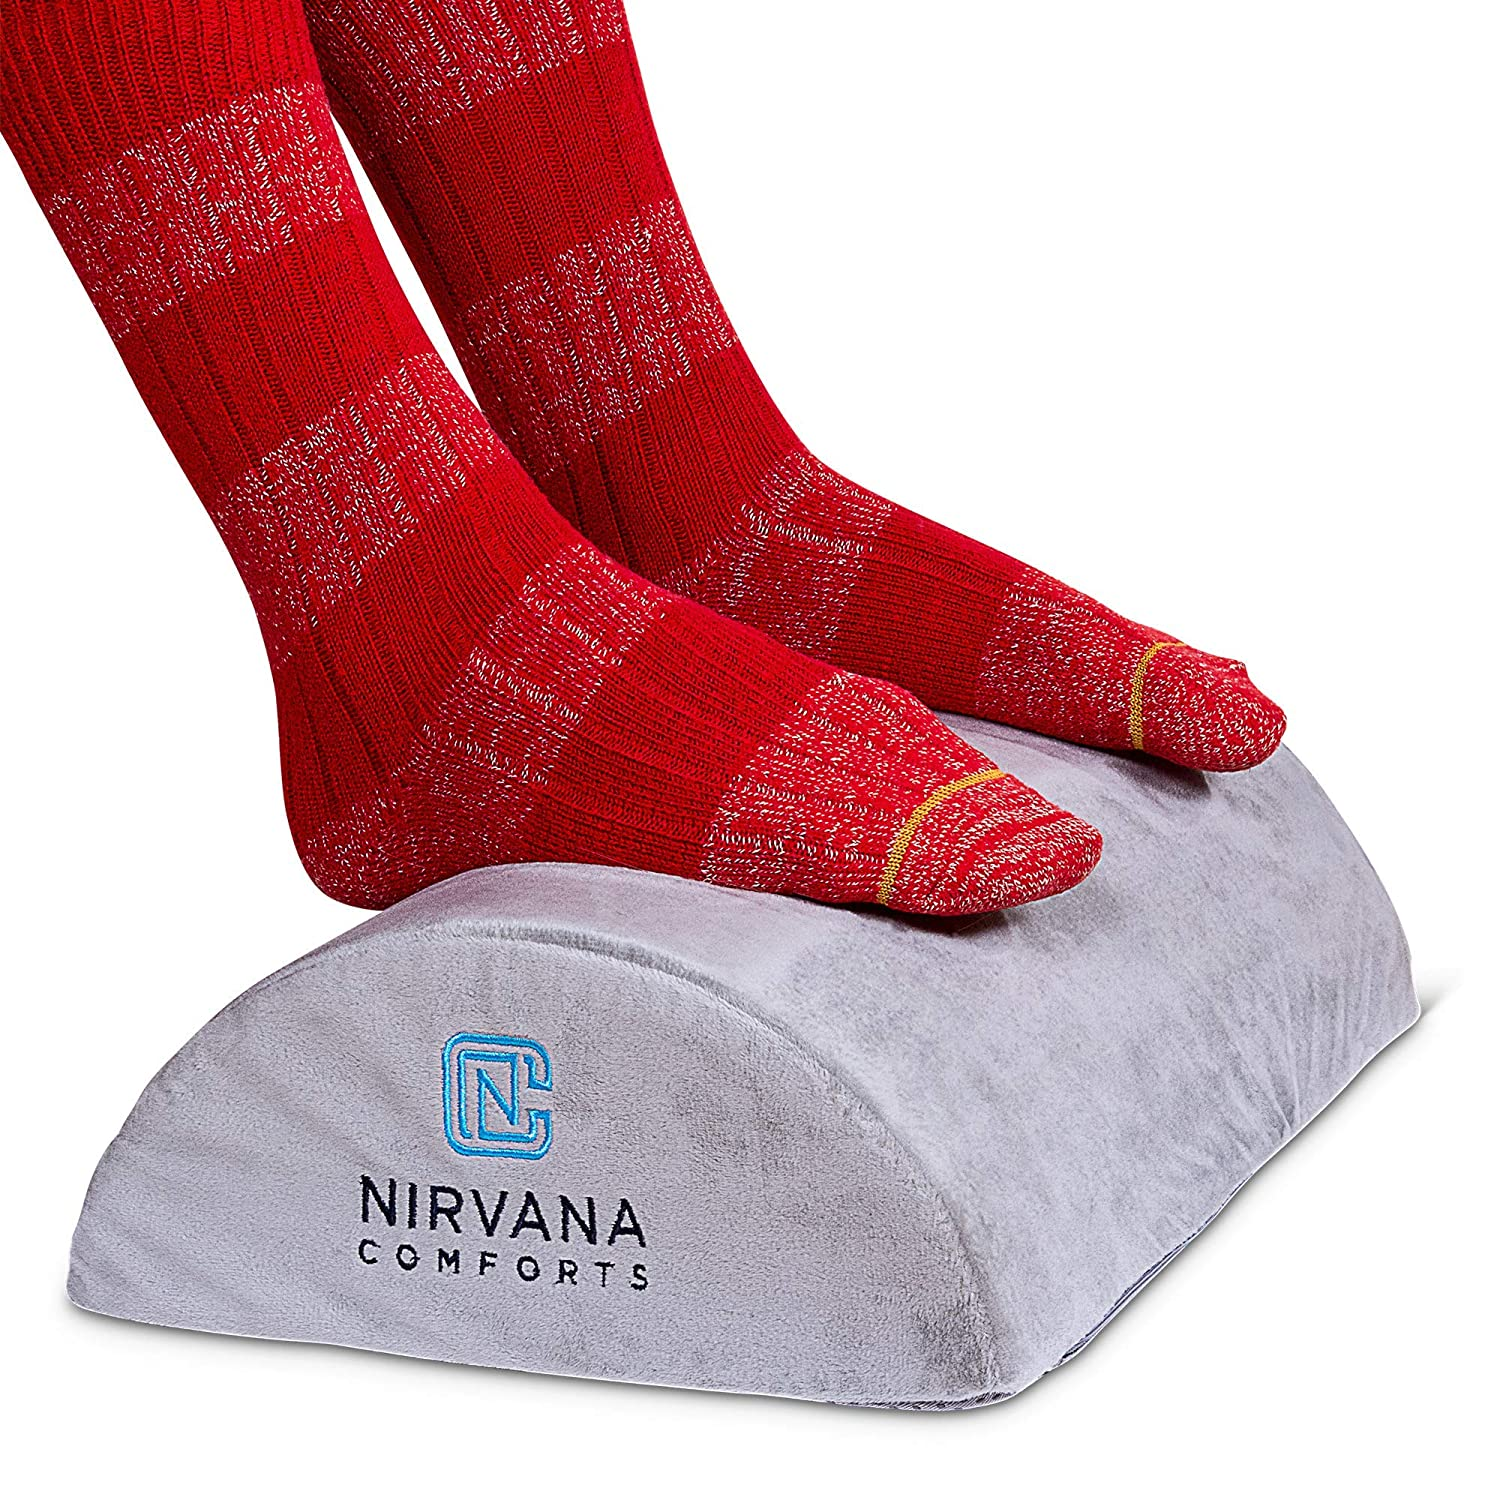 Footrest for Desk by Nirvana Comforts Comfortable Under Desk Foam Pillow for Office or Airplane Ergonomic Foot Elevation Padded for Sofa or Chair Back Relief for Plantar Fasciitis